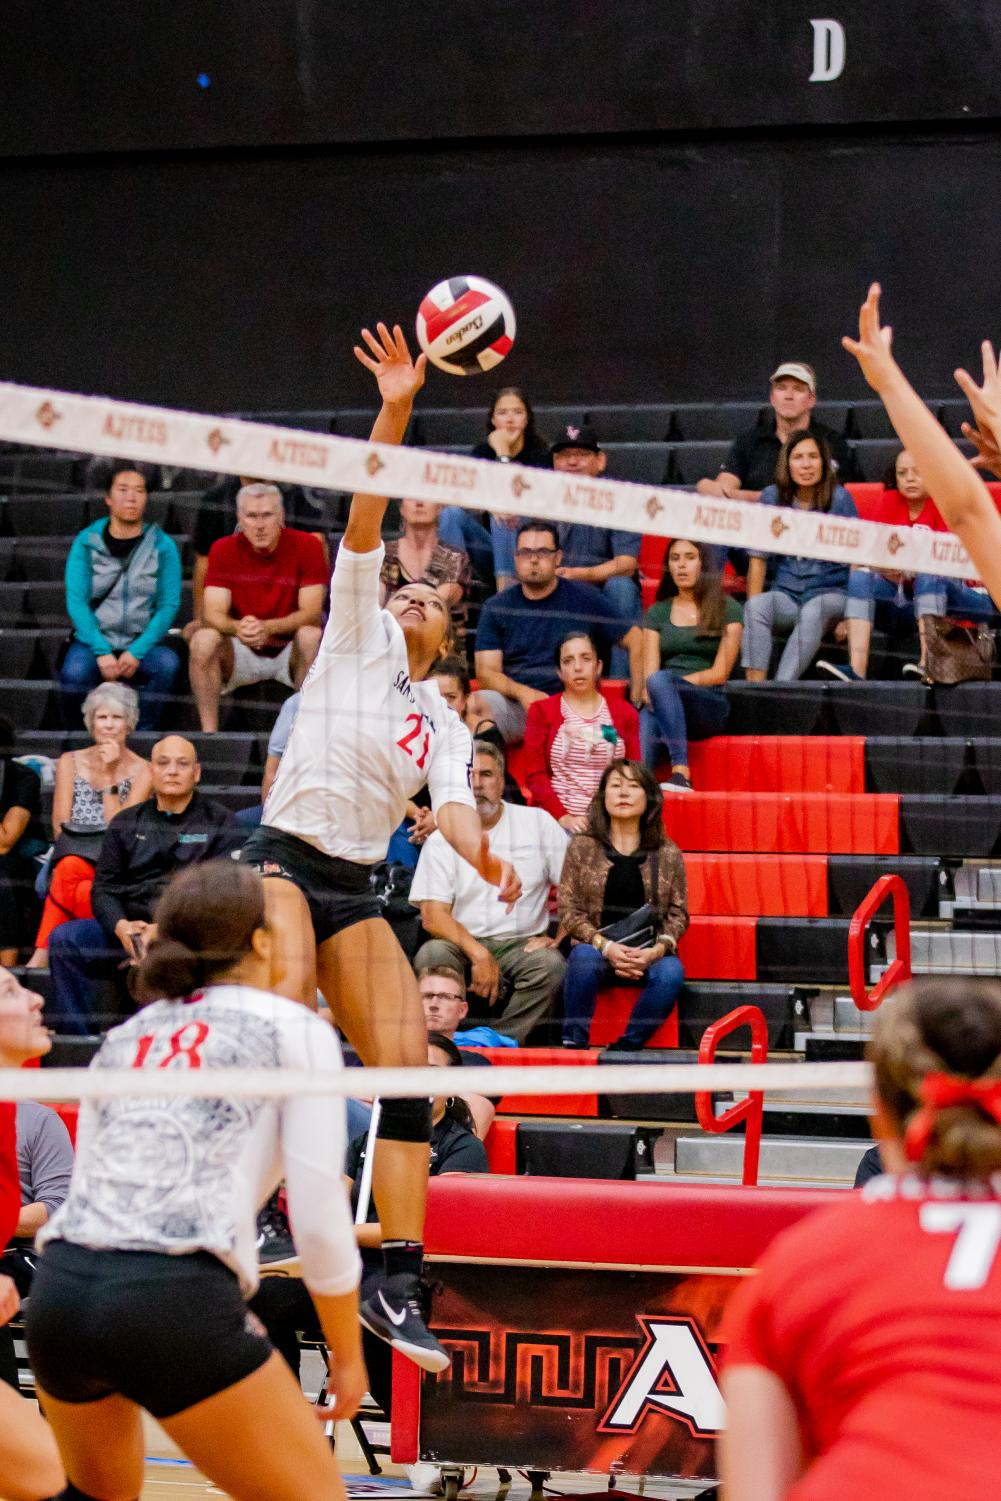 Sophomore outside hitter Victoria O'Sullivan spikes the ball in the Aztecs' 3-1 loss to UNLV on Oct. 3 at Peterson Gym.